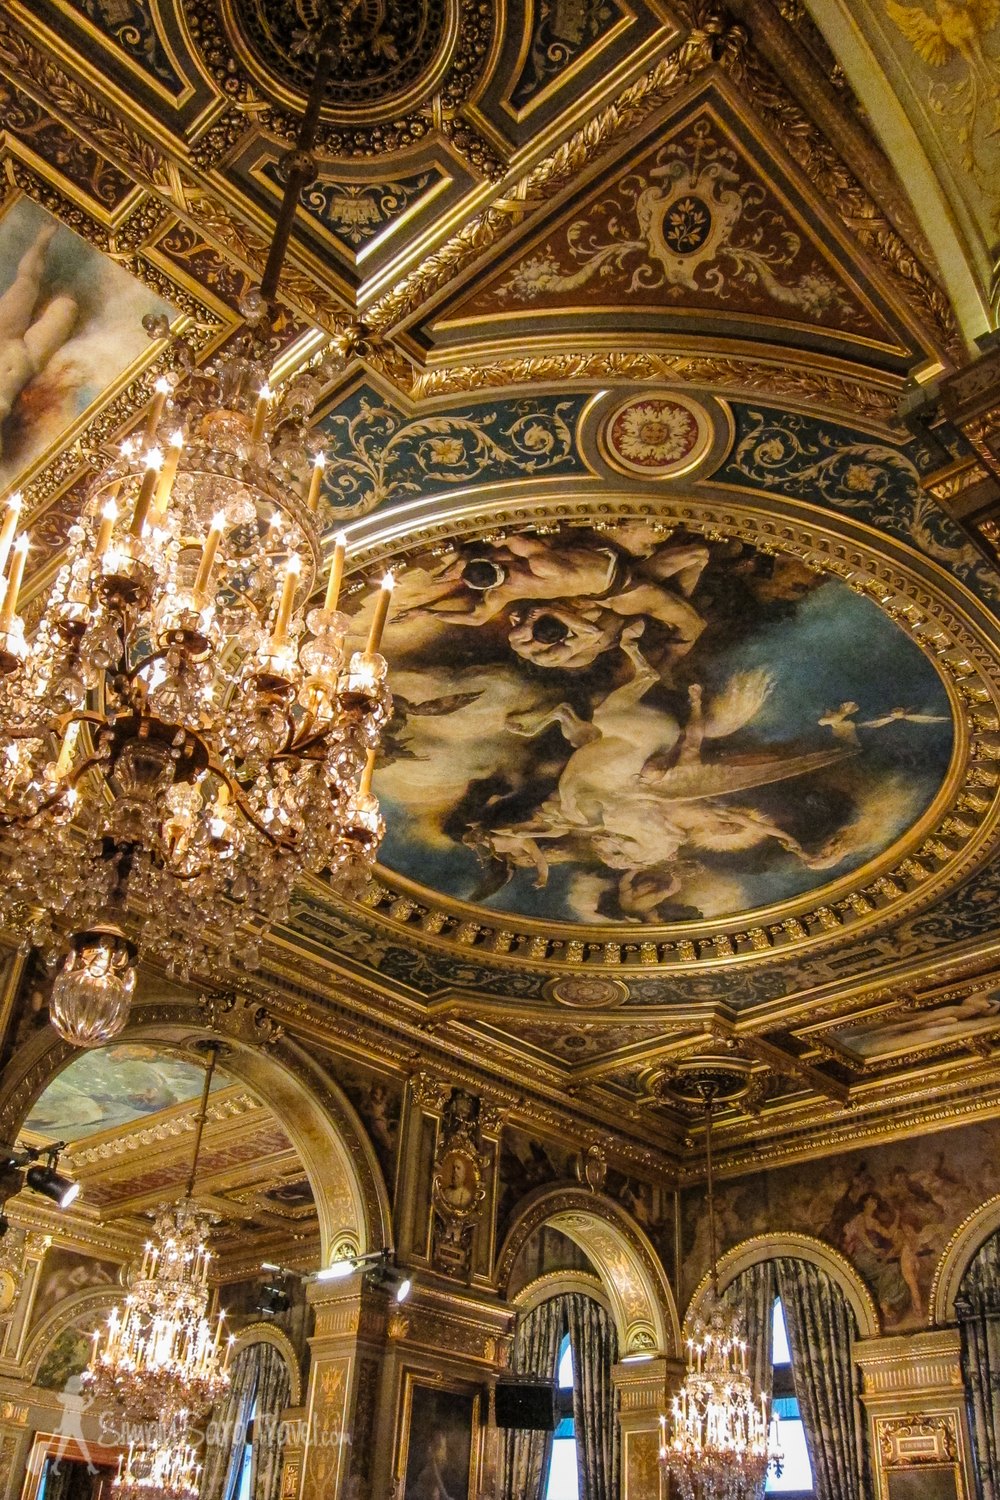 Hôtel de Ville was so magnificent inside I want to go again this year!